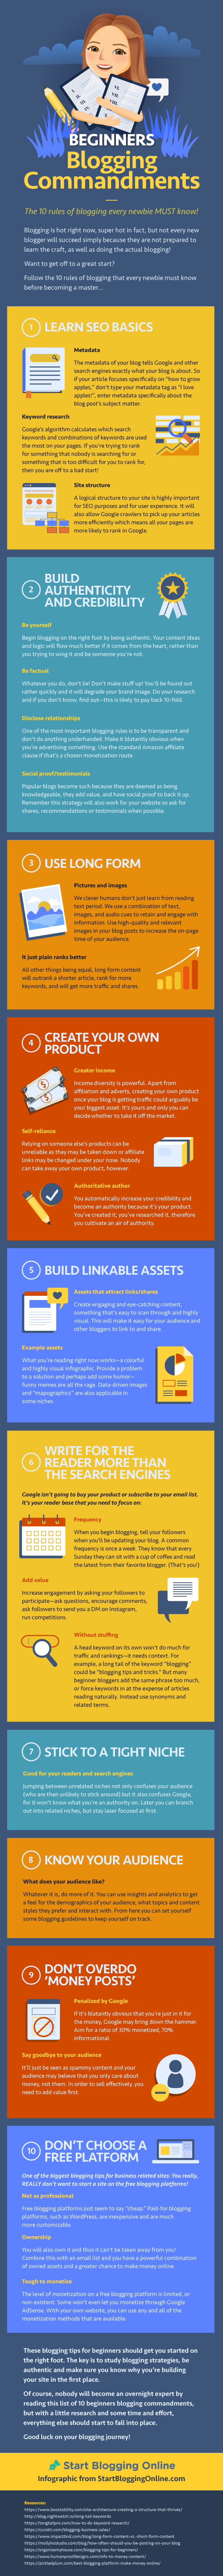 Beginners Blogging Commandments infographic